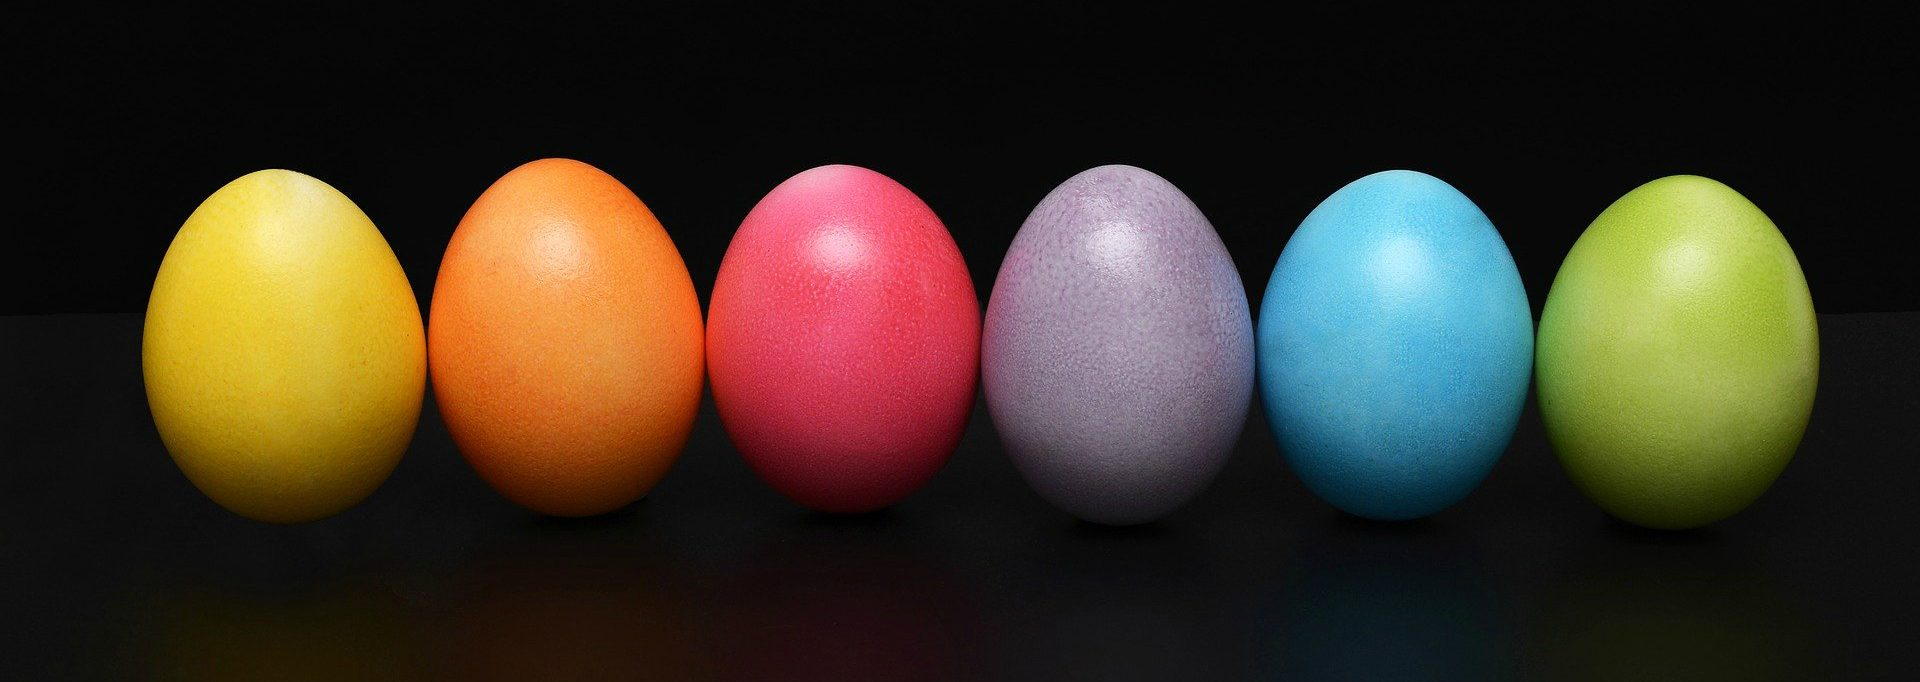 How To Make Glow In The Dark Easter Eggs